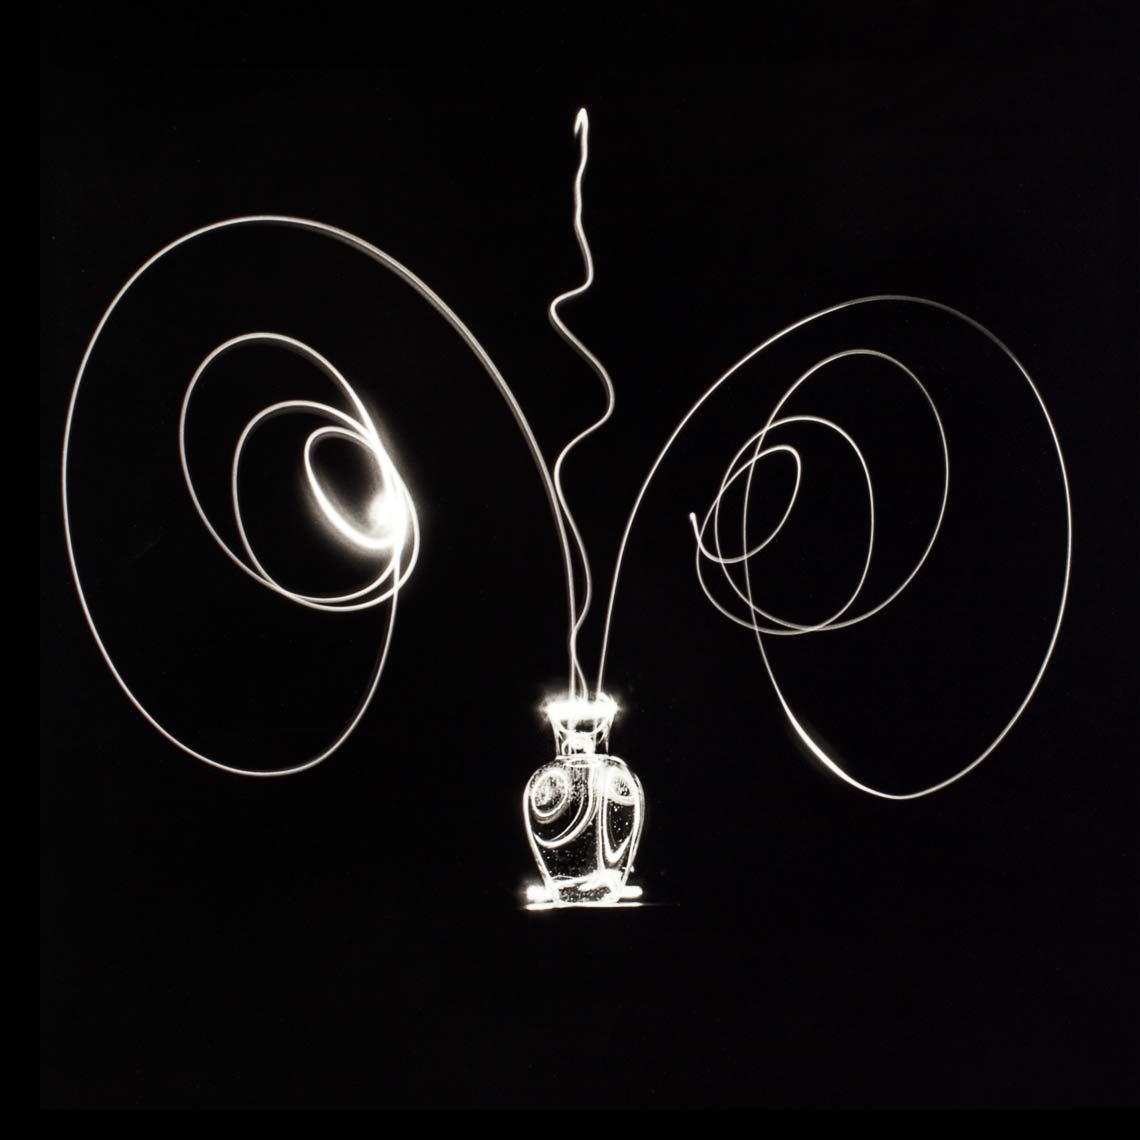 David Lebe; Scribble 1, 1987, light drawing, black and white photograph